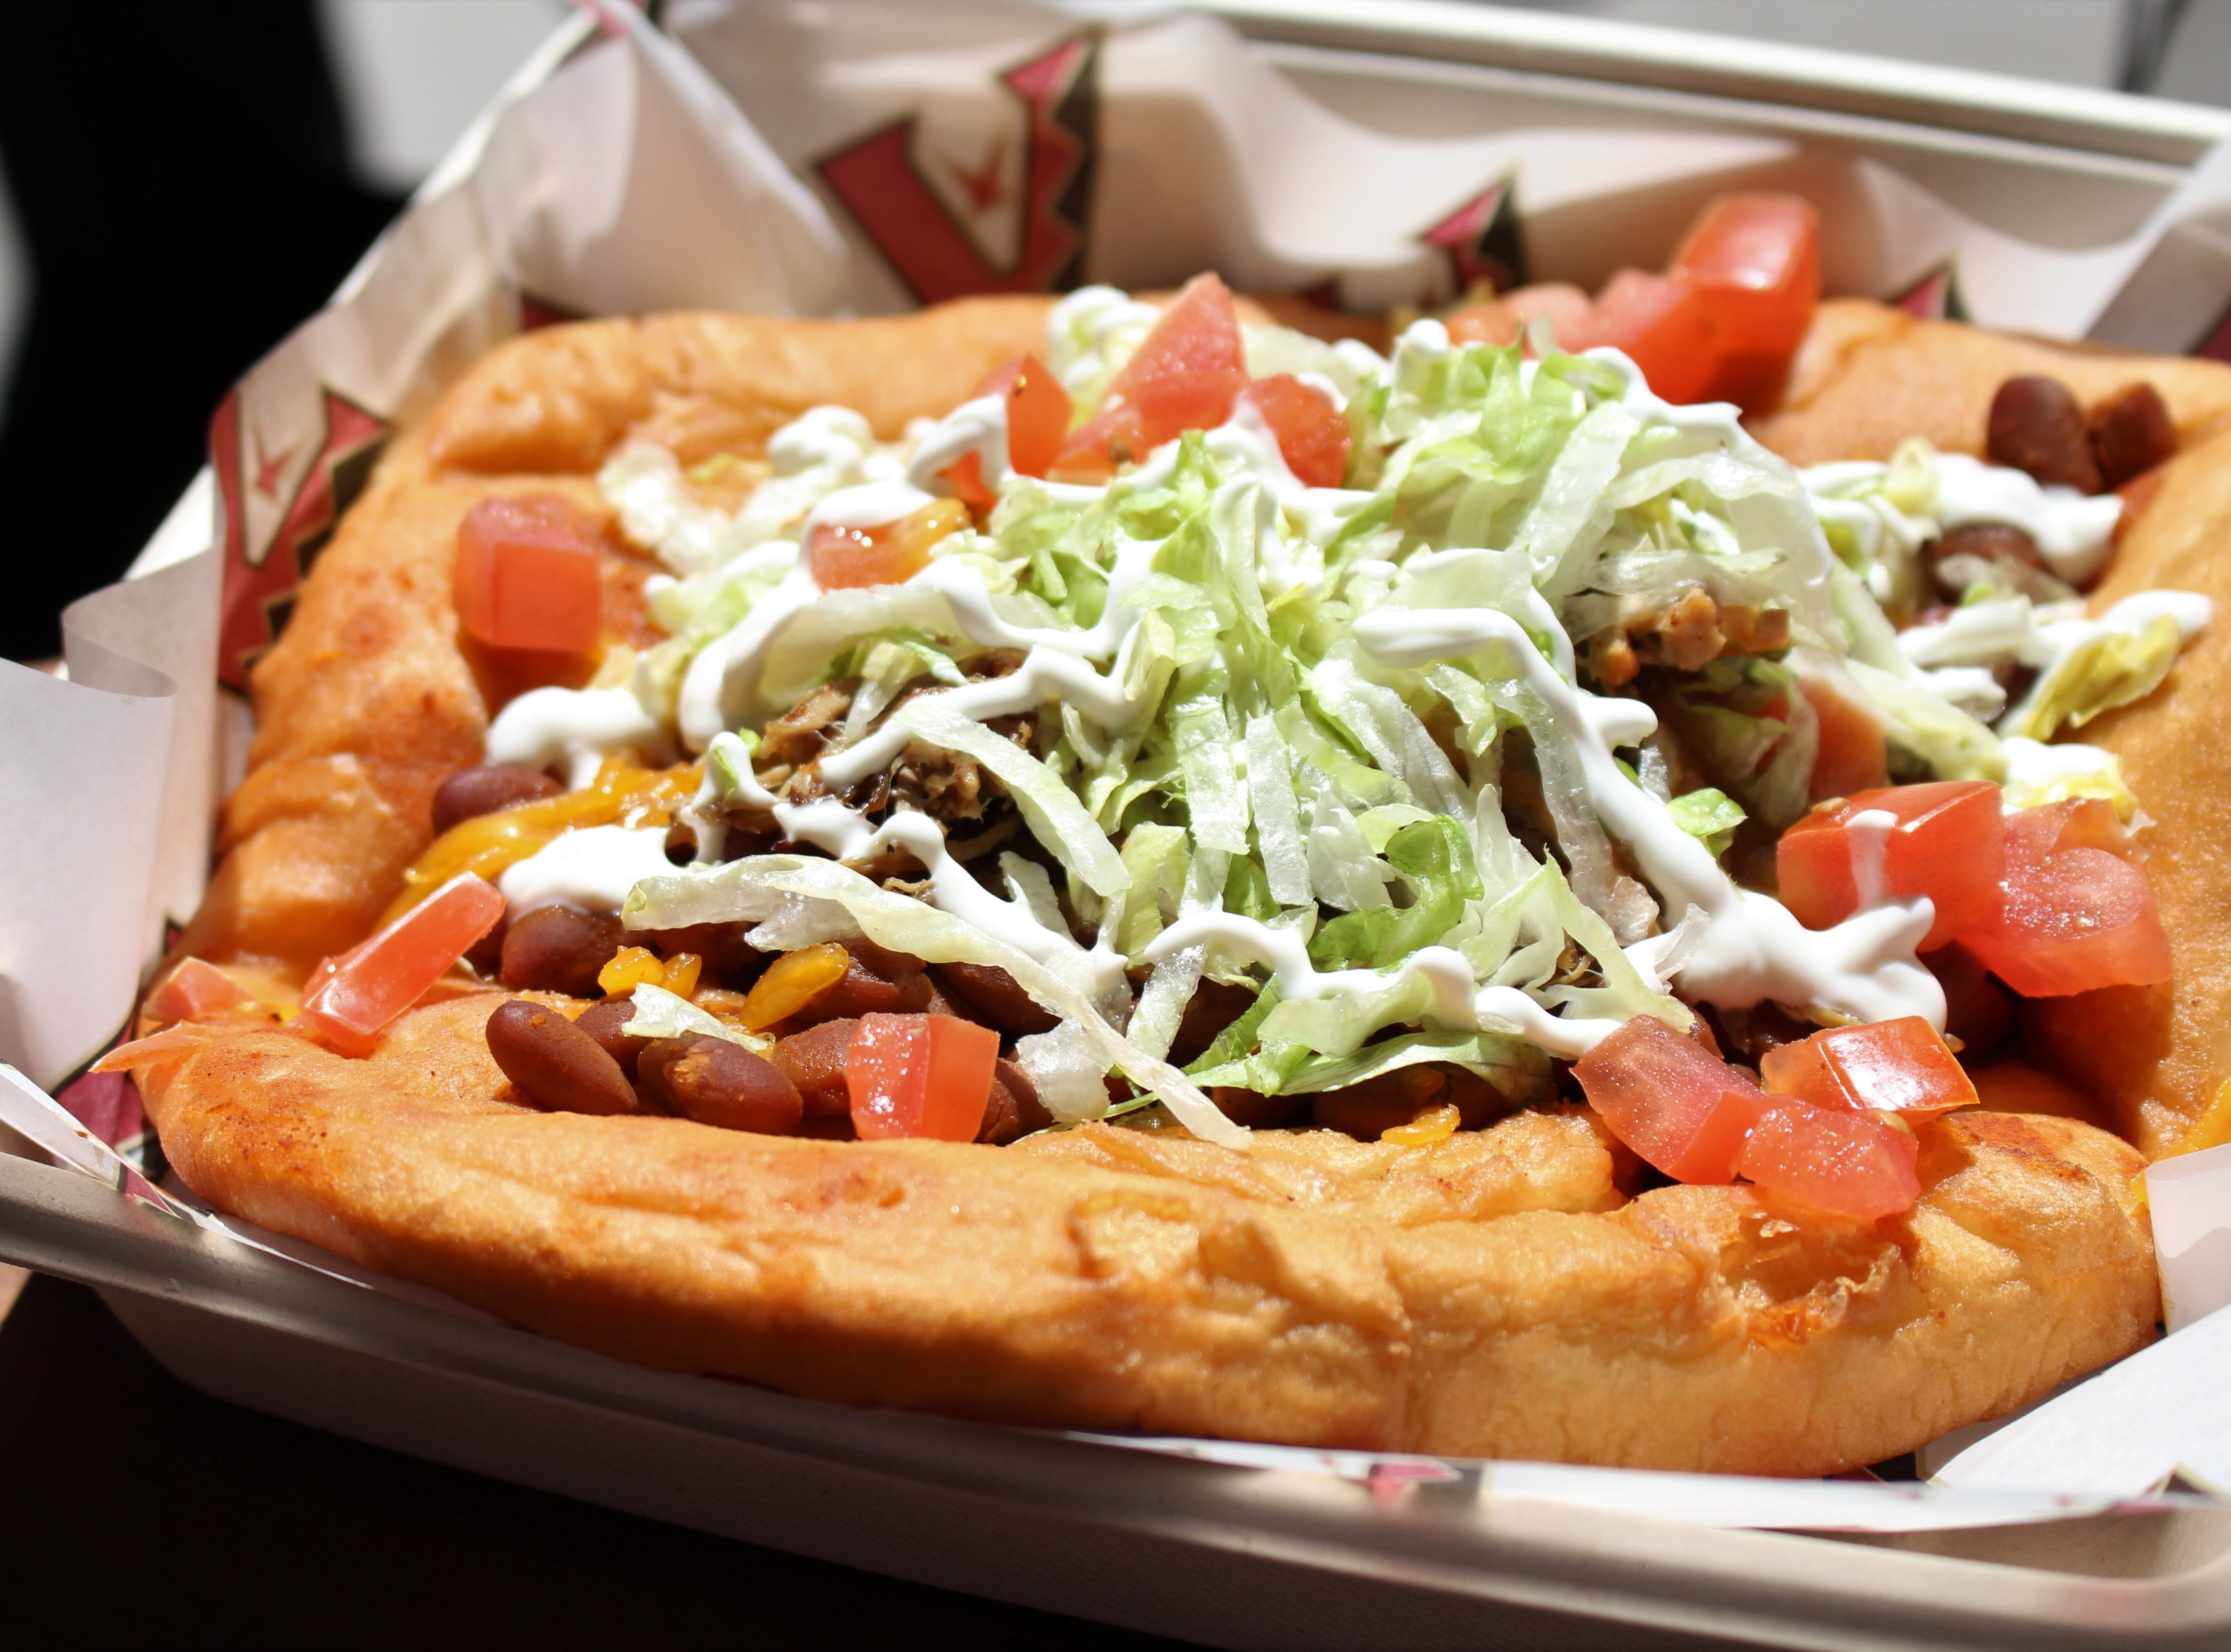 New to Chase Field: The 505 Fry Bread Taco. A fry bread shell topped with ranch beans, carnitas, 505 Southwestern green chile sauce, Cheddar cheese, lettuce, tomato and sour cream. Available for $14 at Taste of Chase.